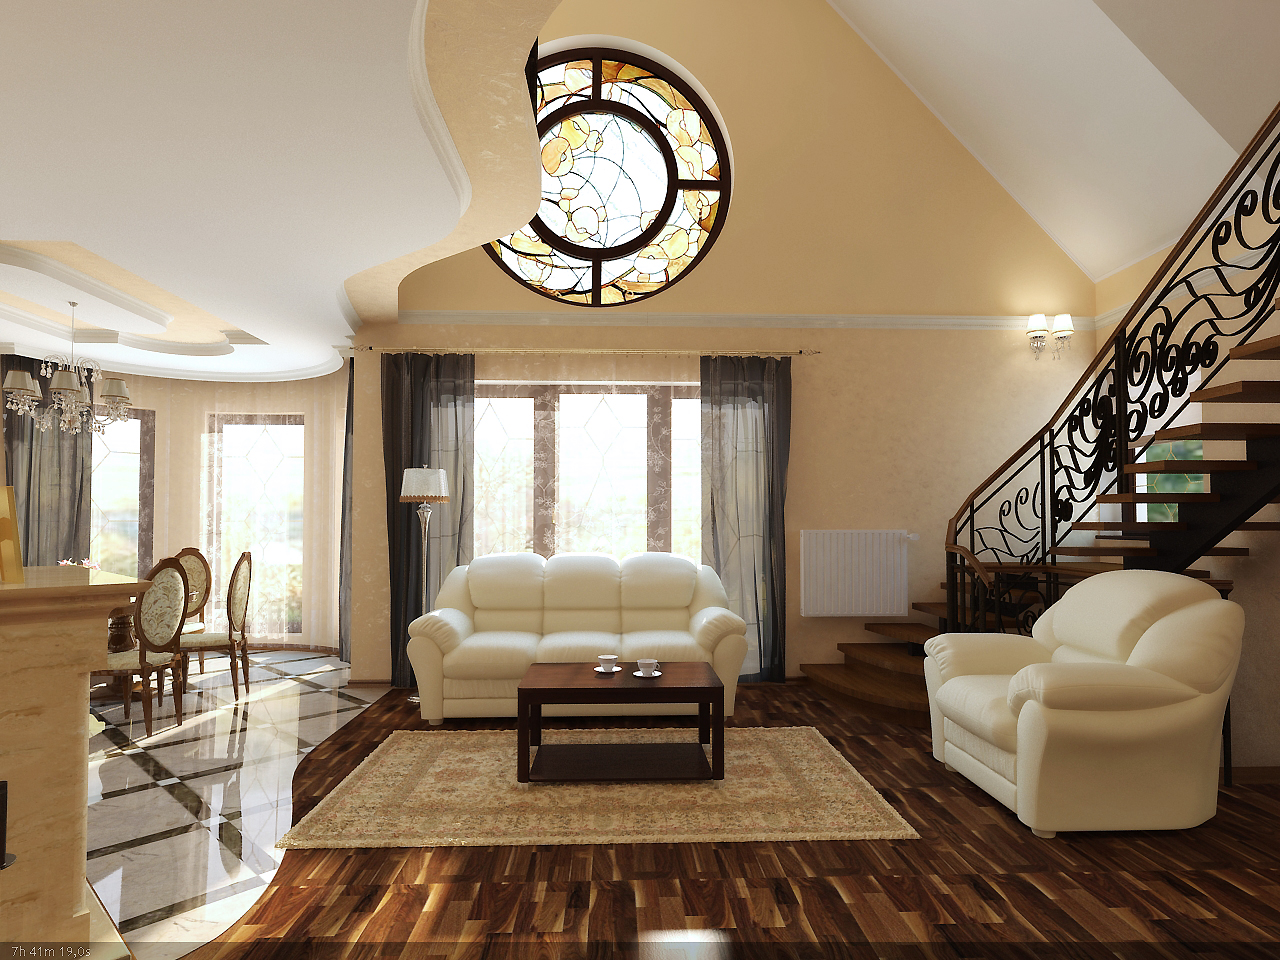 Interior Home Design classic interior design